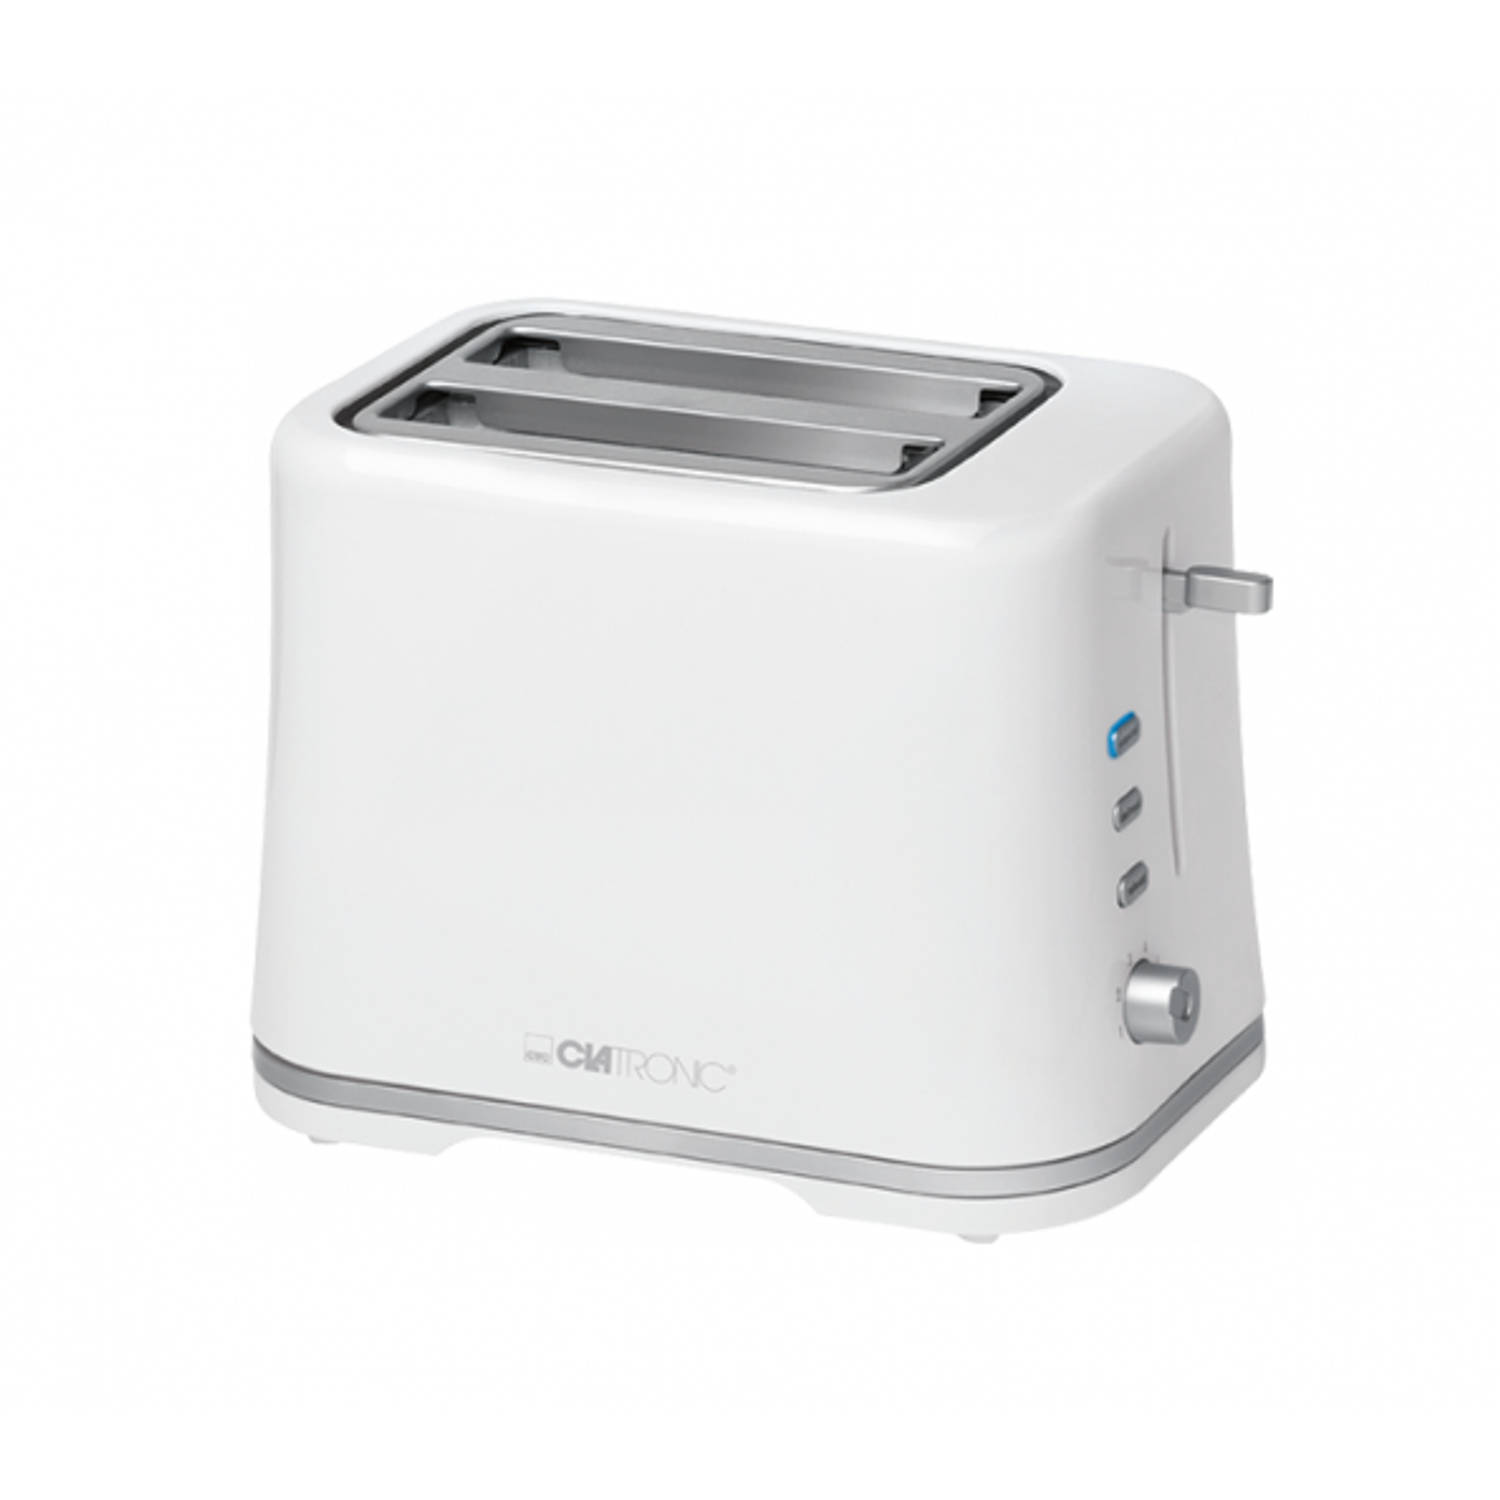 Clatronic broodrooster-toaster ta 3554 wit